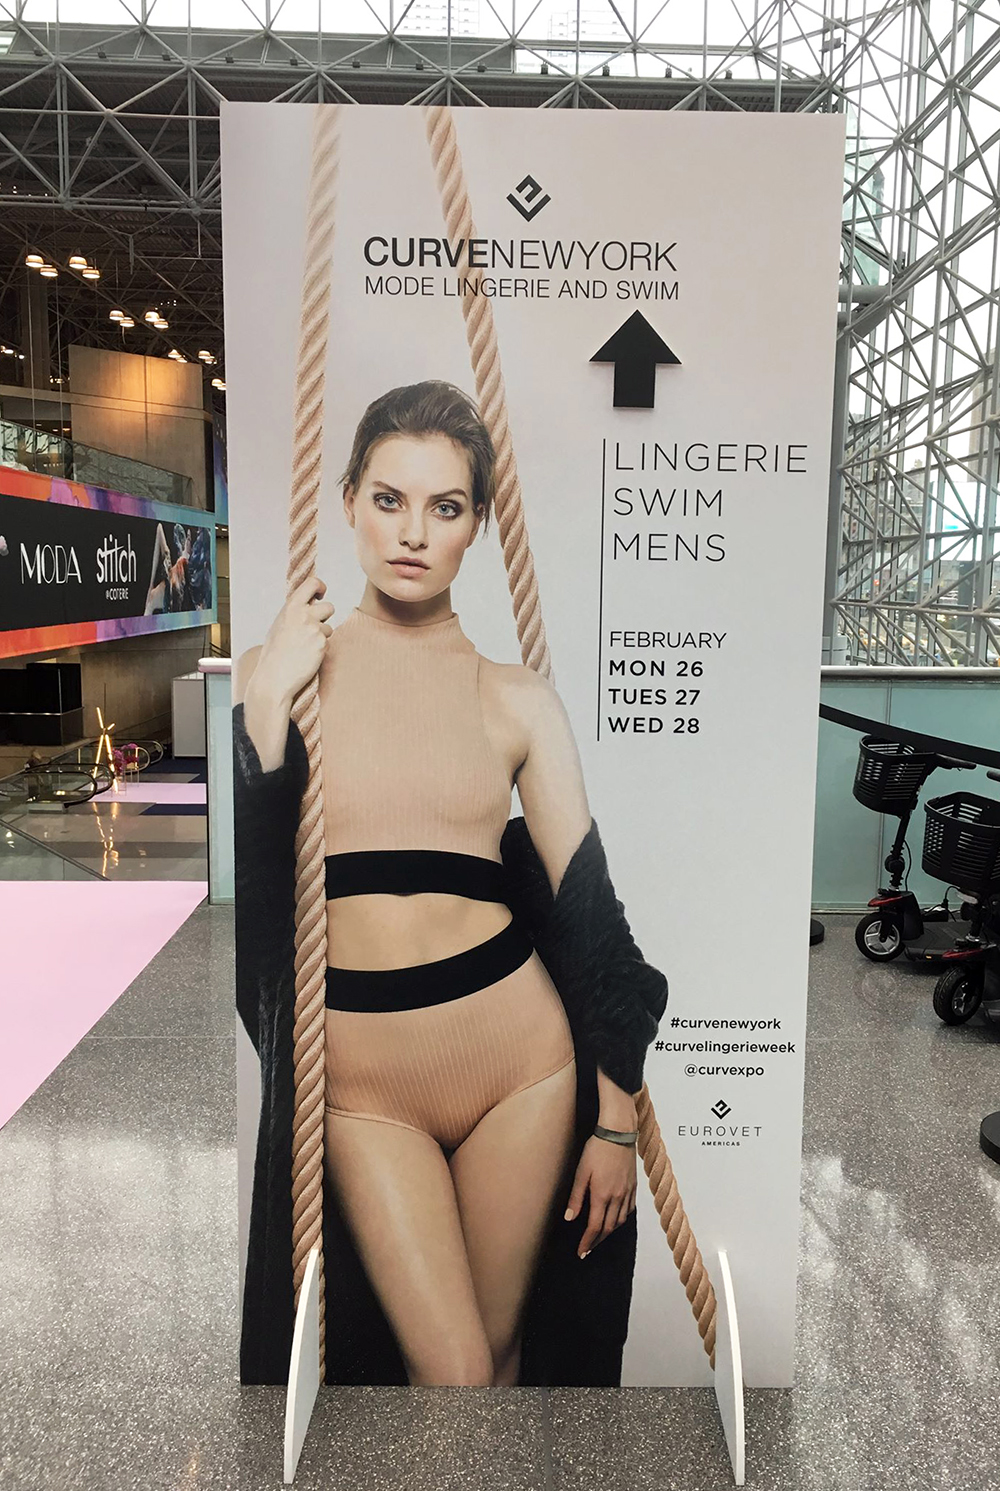 650f58f53f0 Eurovet's Curvexpo New York Mode Lingerie and Swim trade show took place at  the Javits Center from February 26-28, 2018. Exhibitors featured  Fall/Winter ...